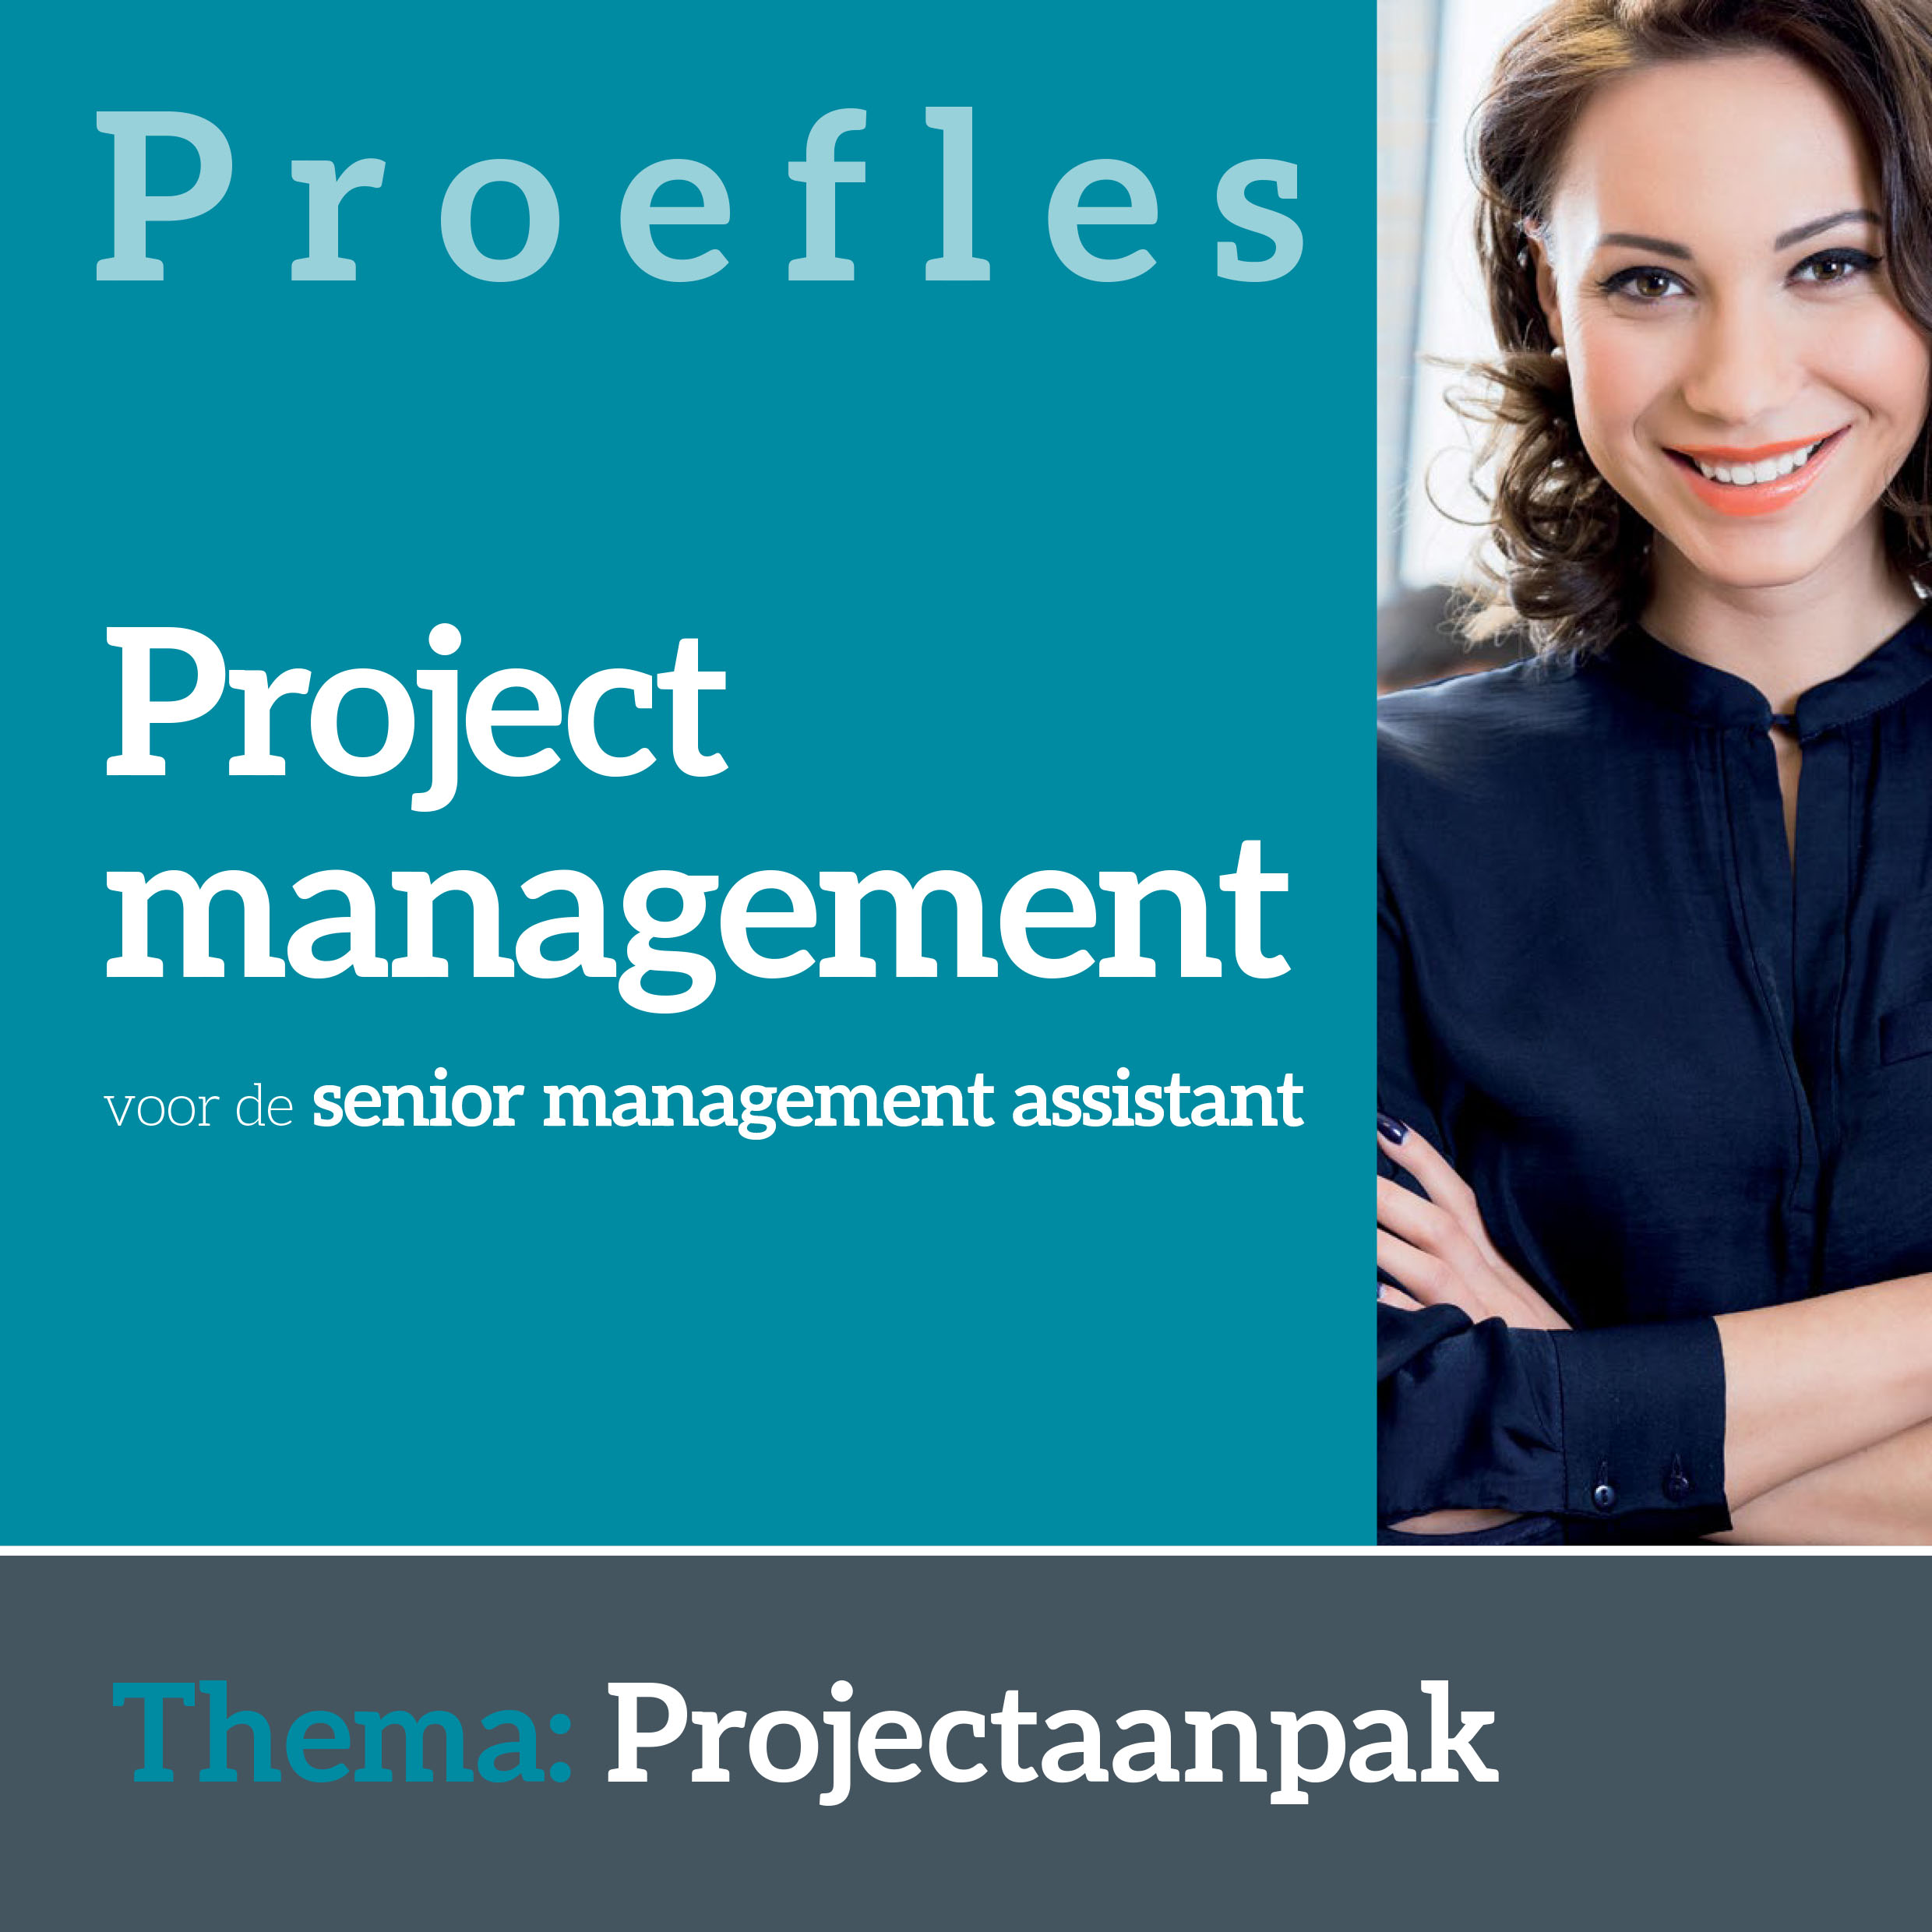 Proefles Teamleider Secretariaat